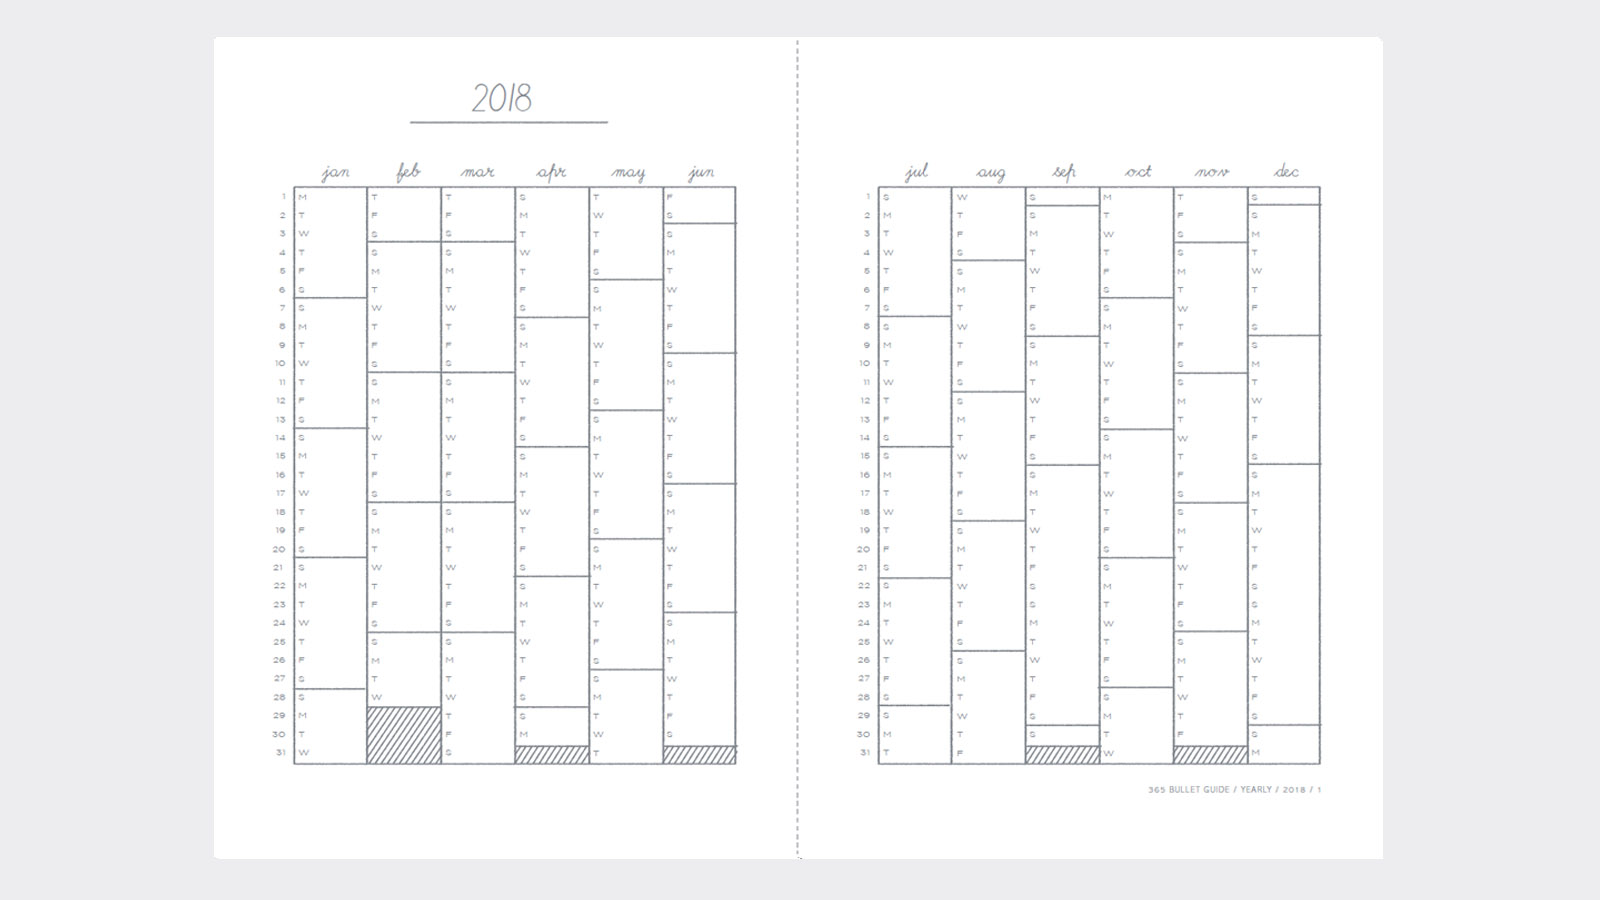 free-bullet-journal-template-yearly-2018-2019